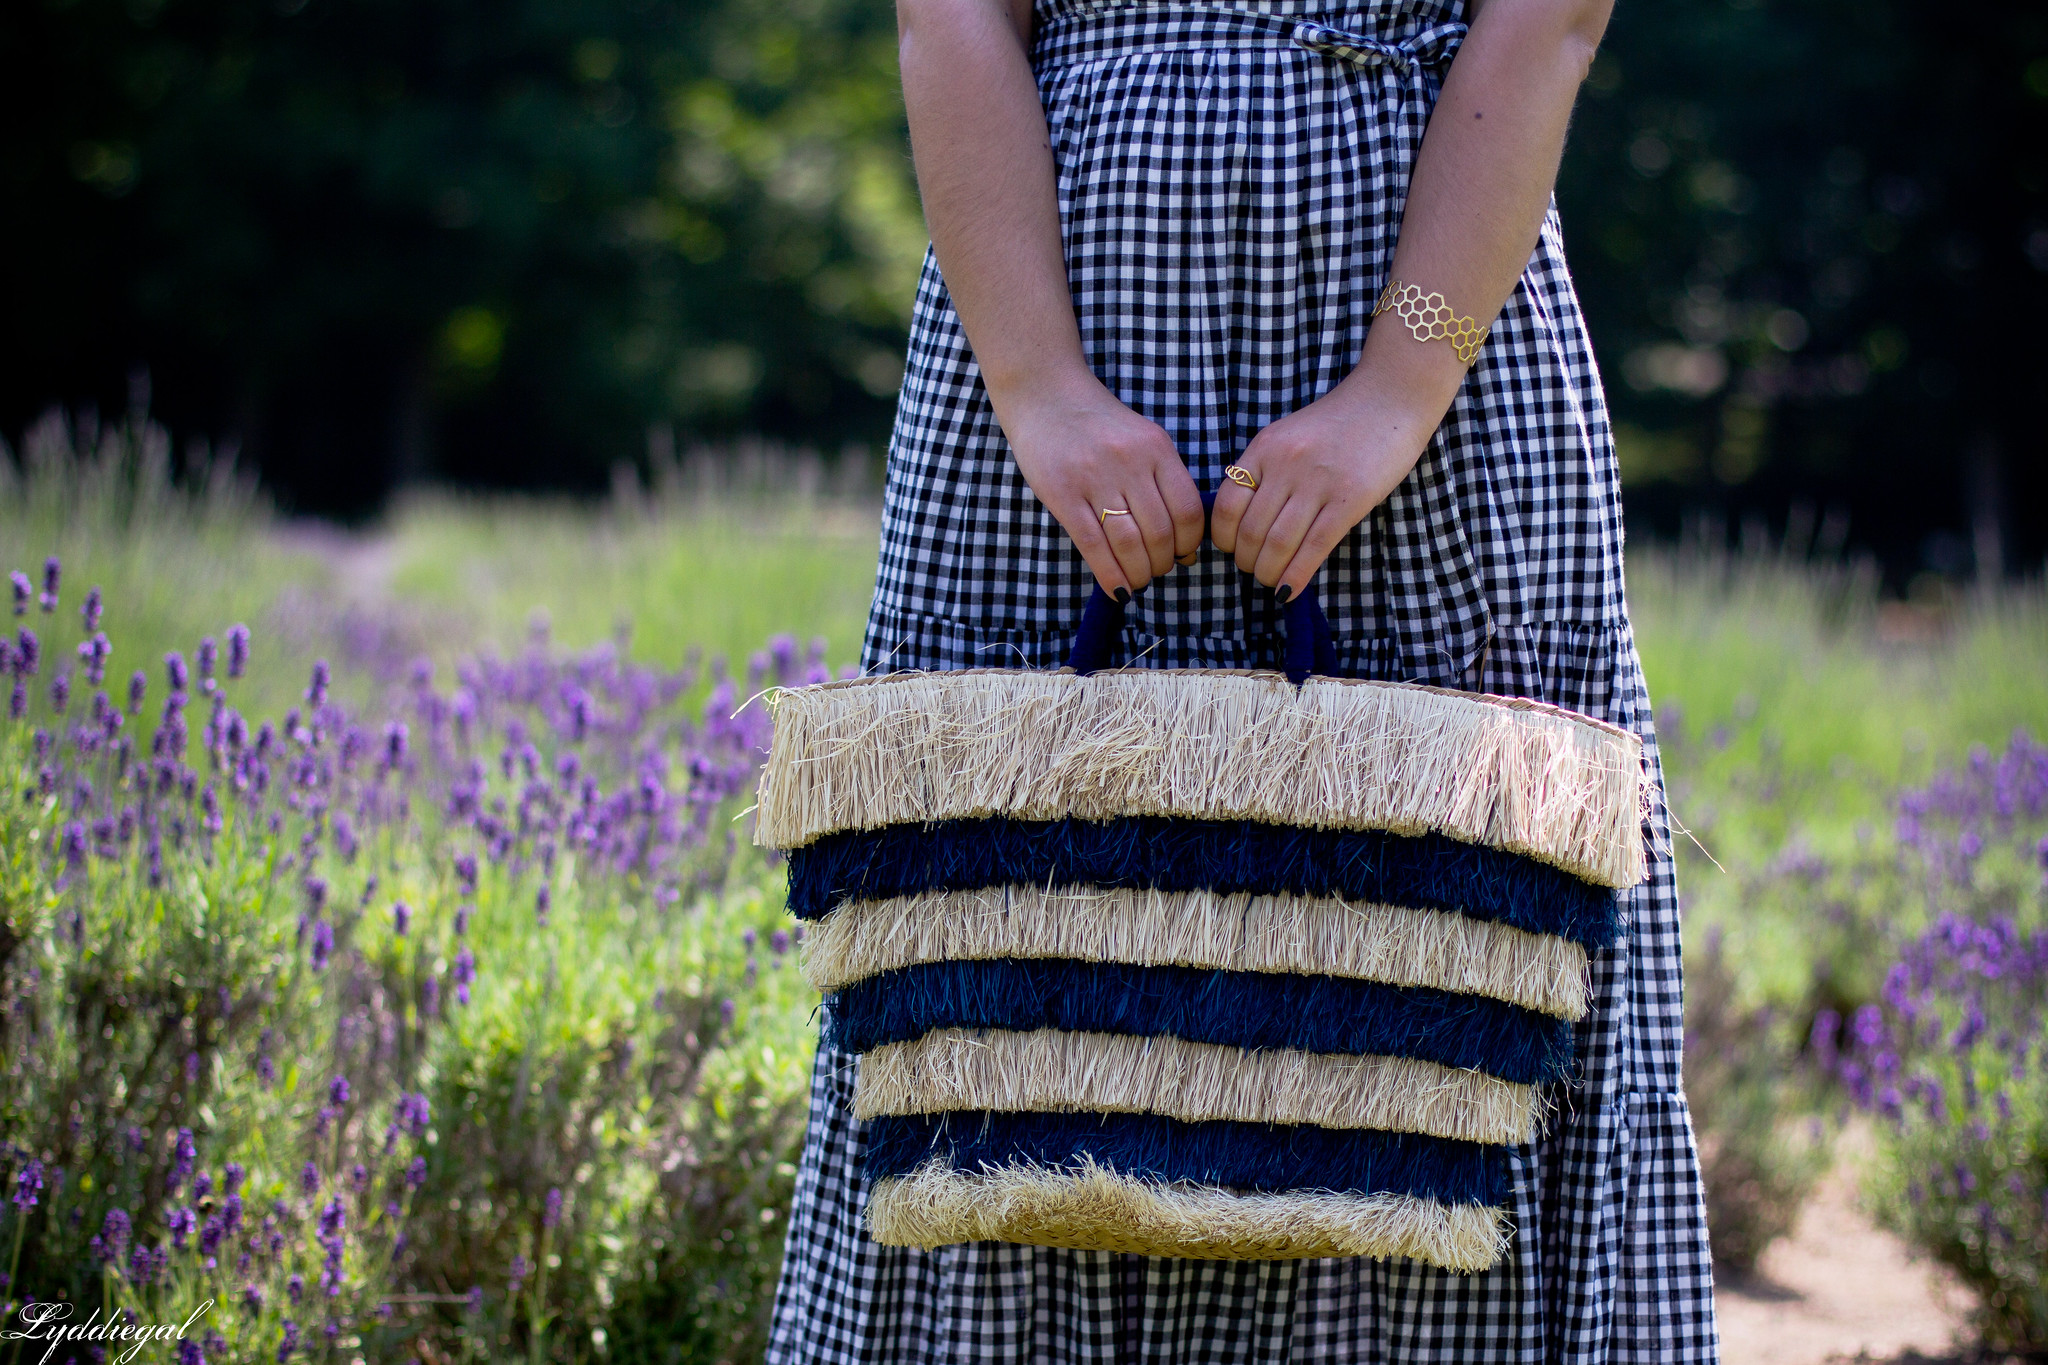 gingham maxi dress, pinata tote bag, lavender field-10.jpg